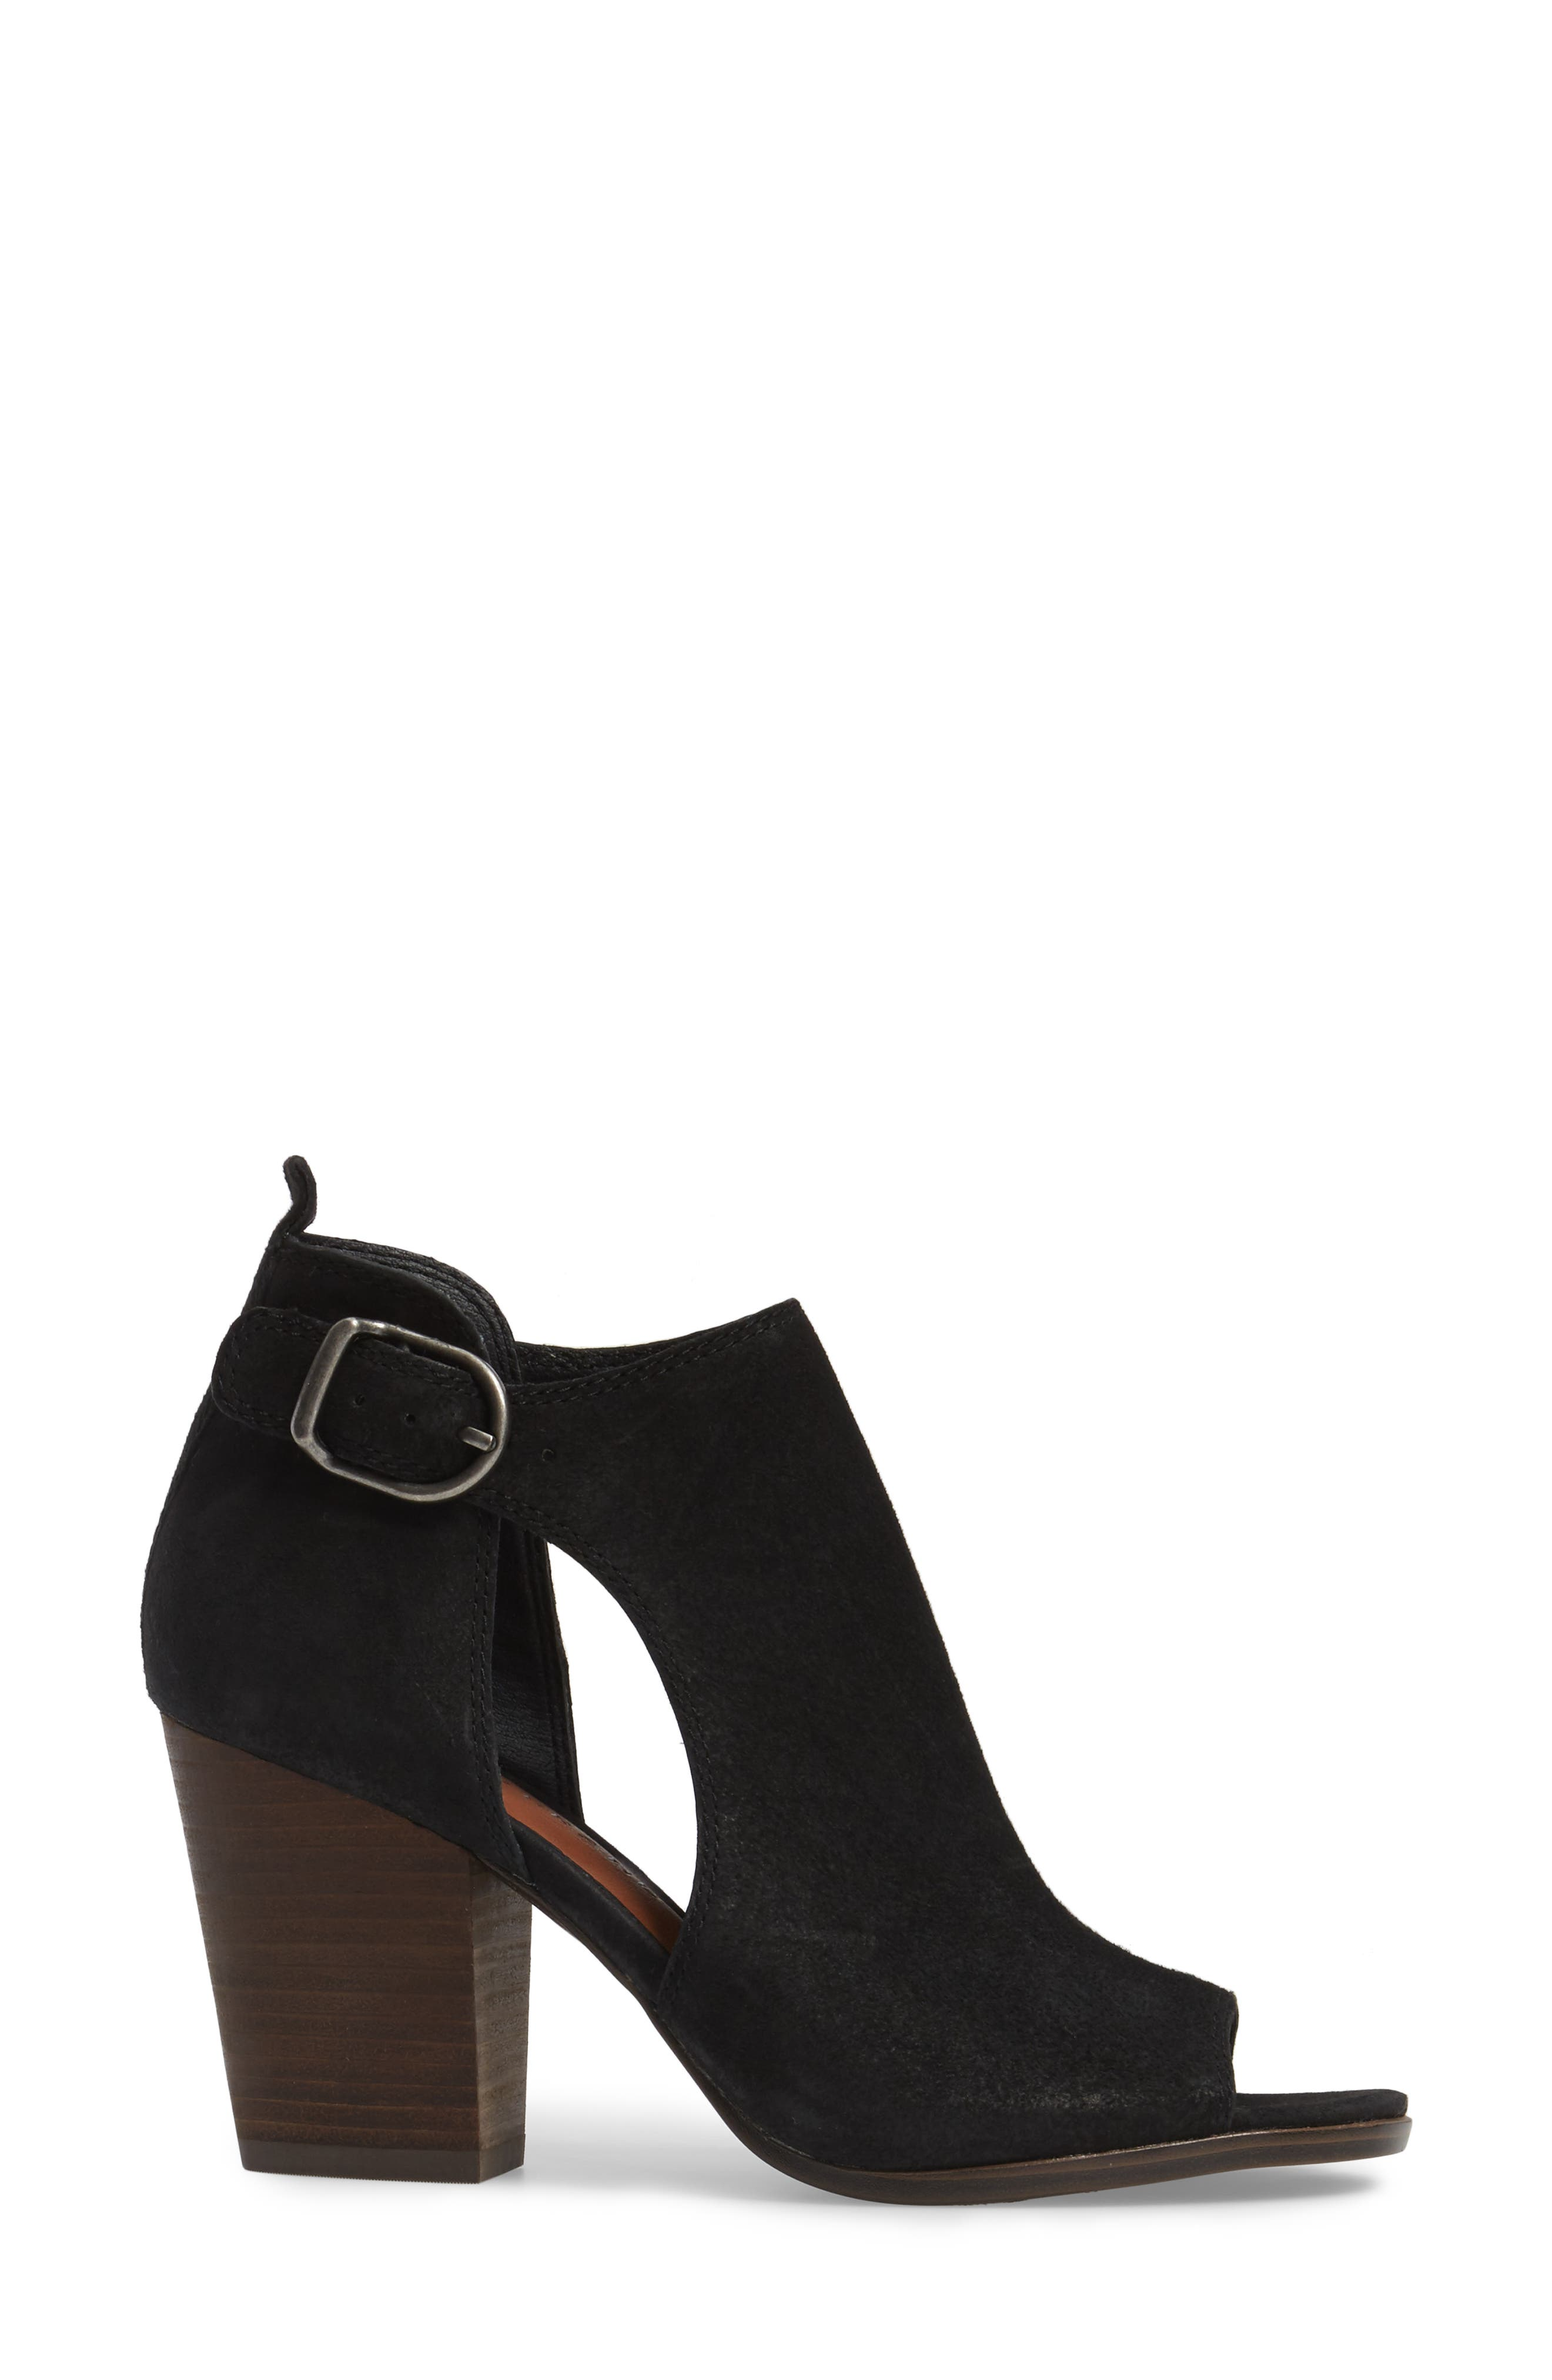 LUCKY BRAND,                             Oona Open Side Bootie,                             Alternate thumbnail 3, color,                             001